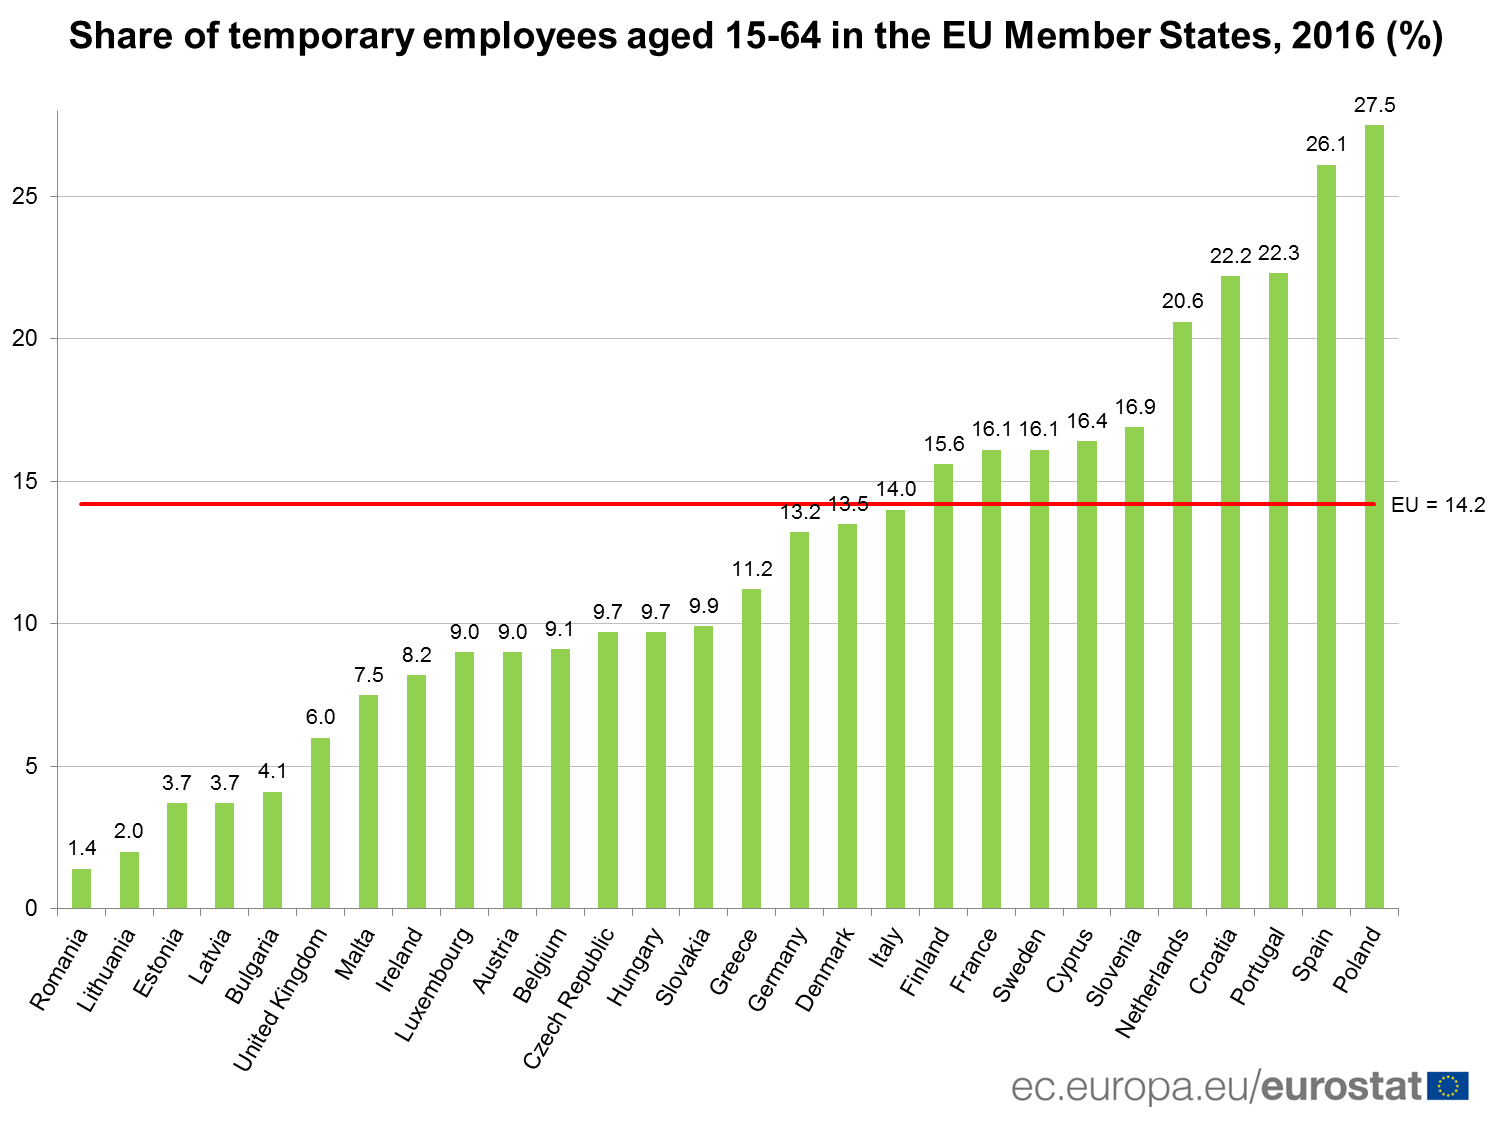 Share of temporary employees aged 15-65 in the EU, 2016 (%)